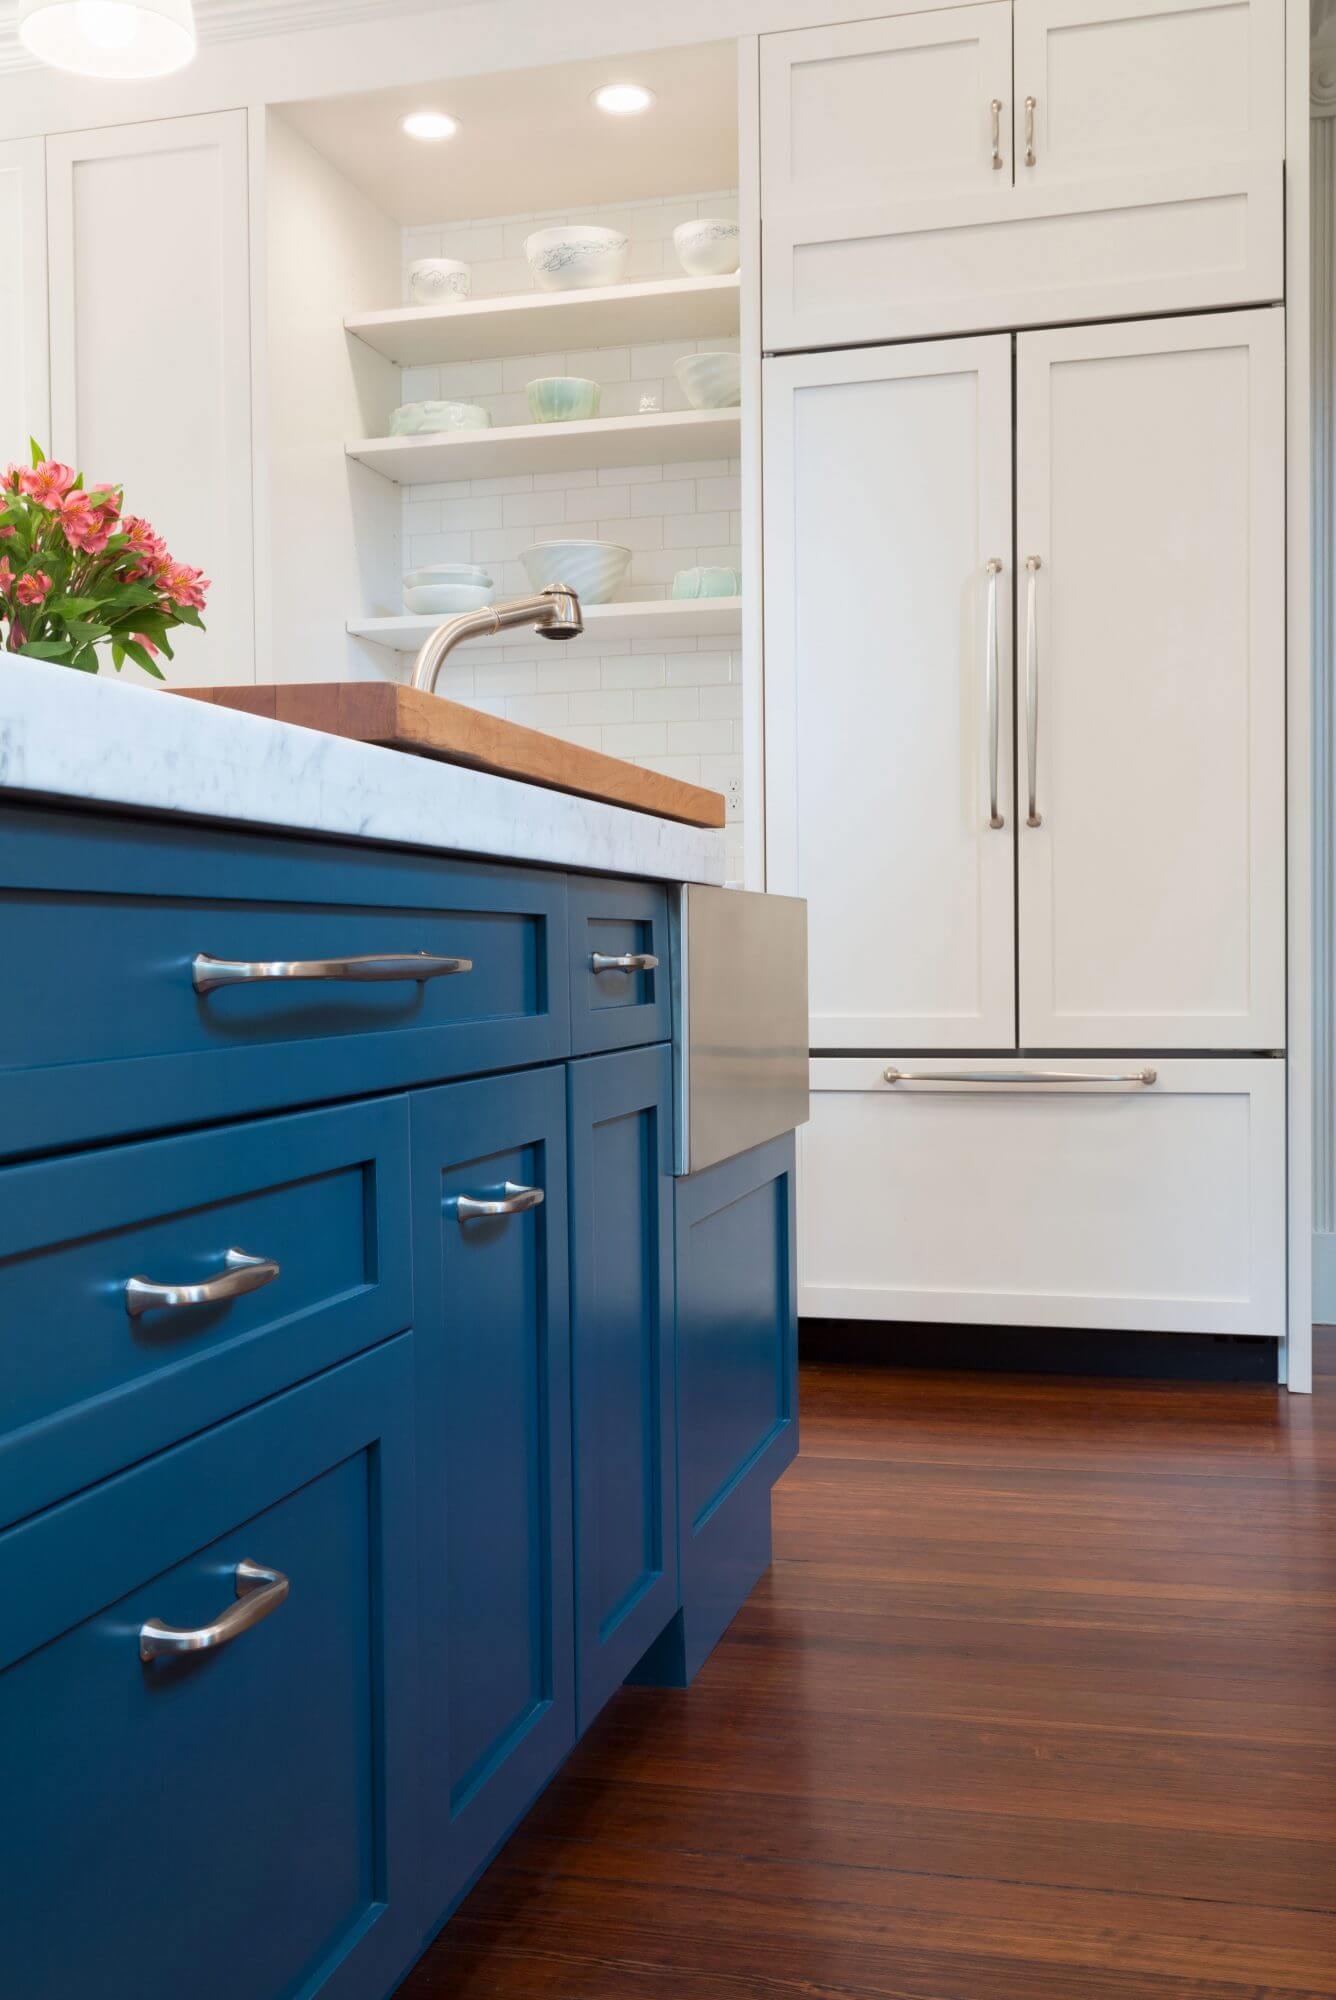 Hague blue kitchen cabinets.